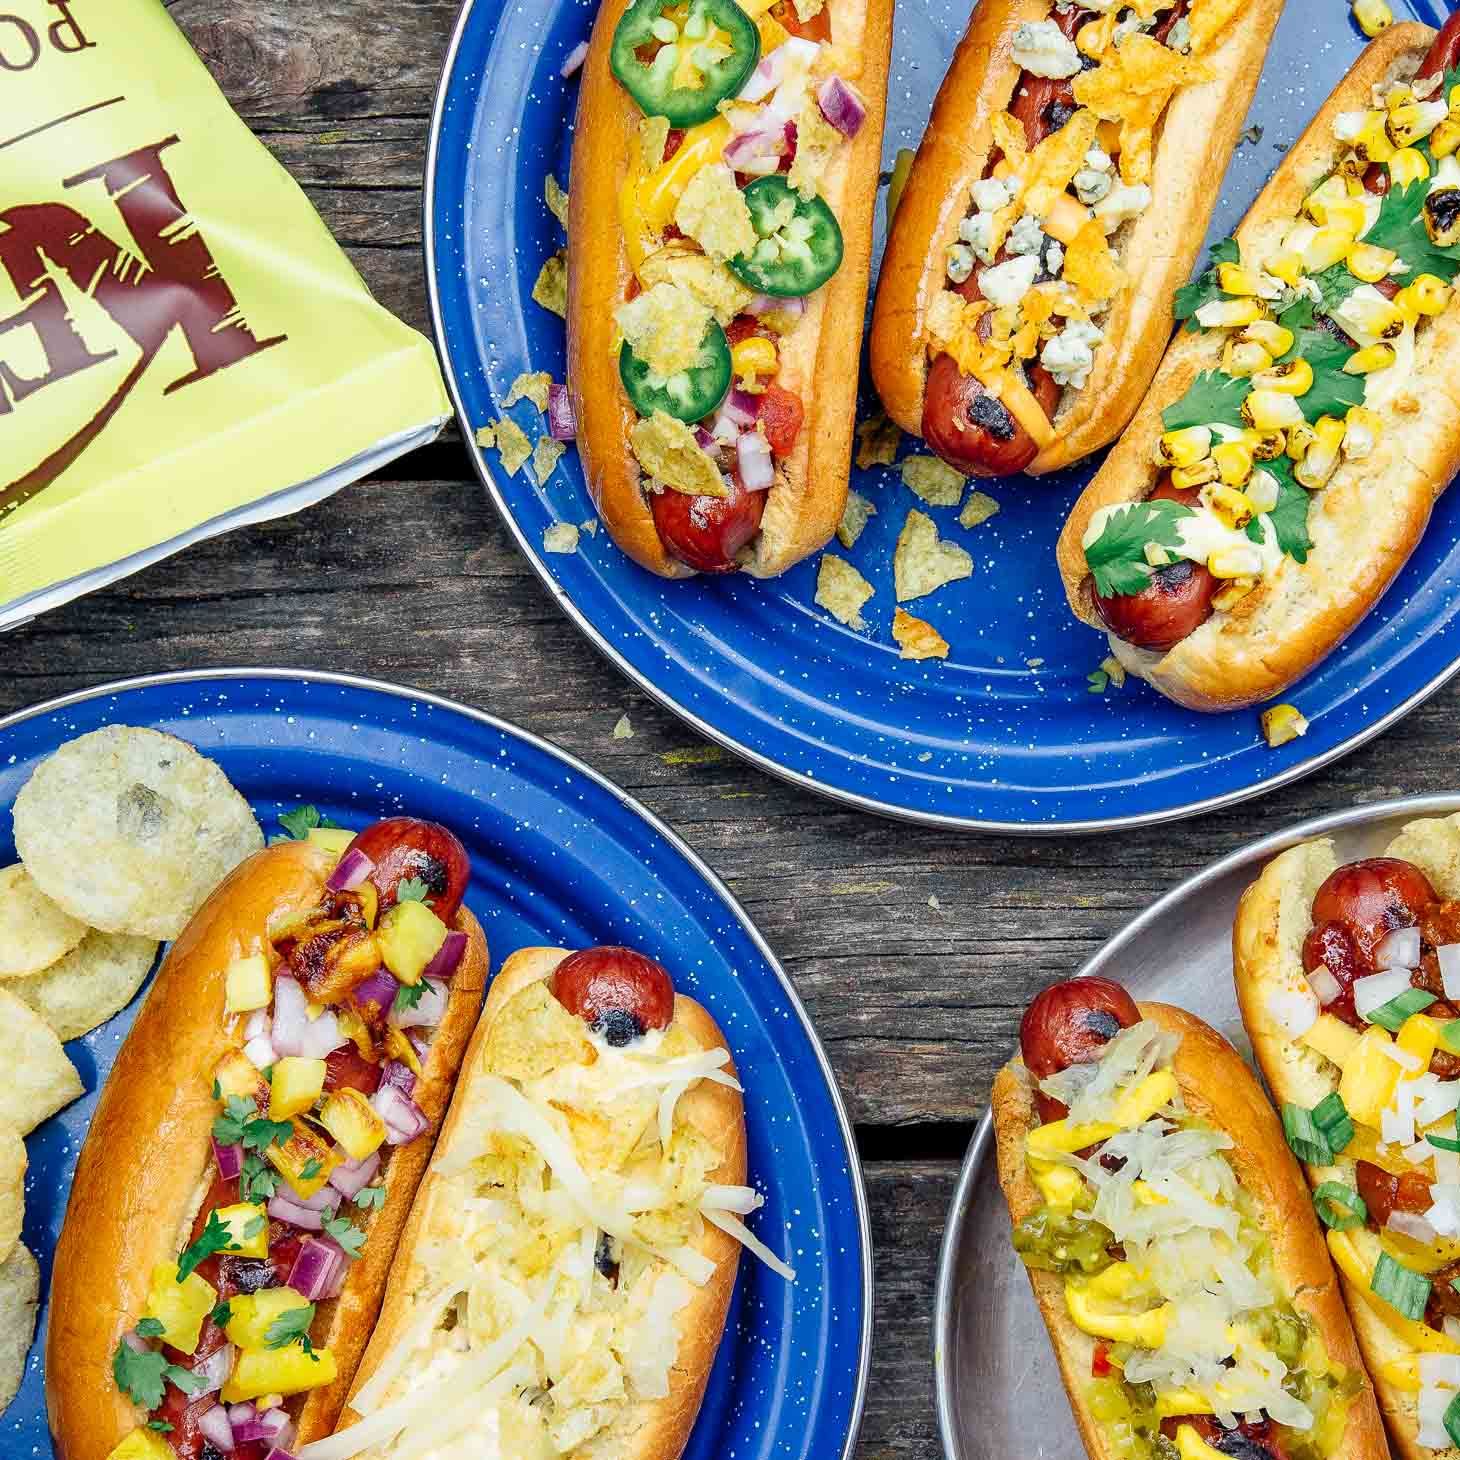 how to make hot dogs without a grill